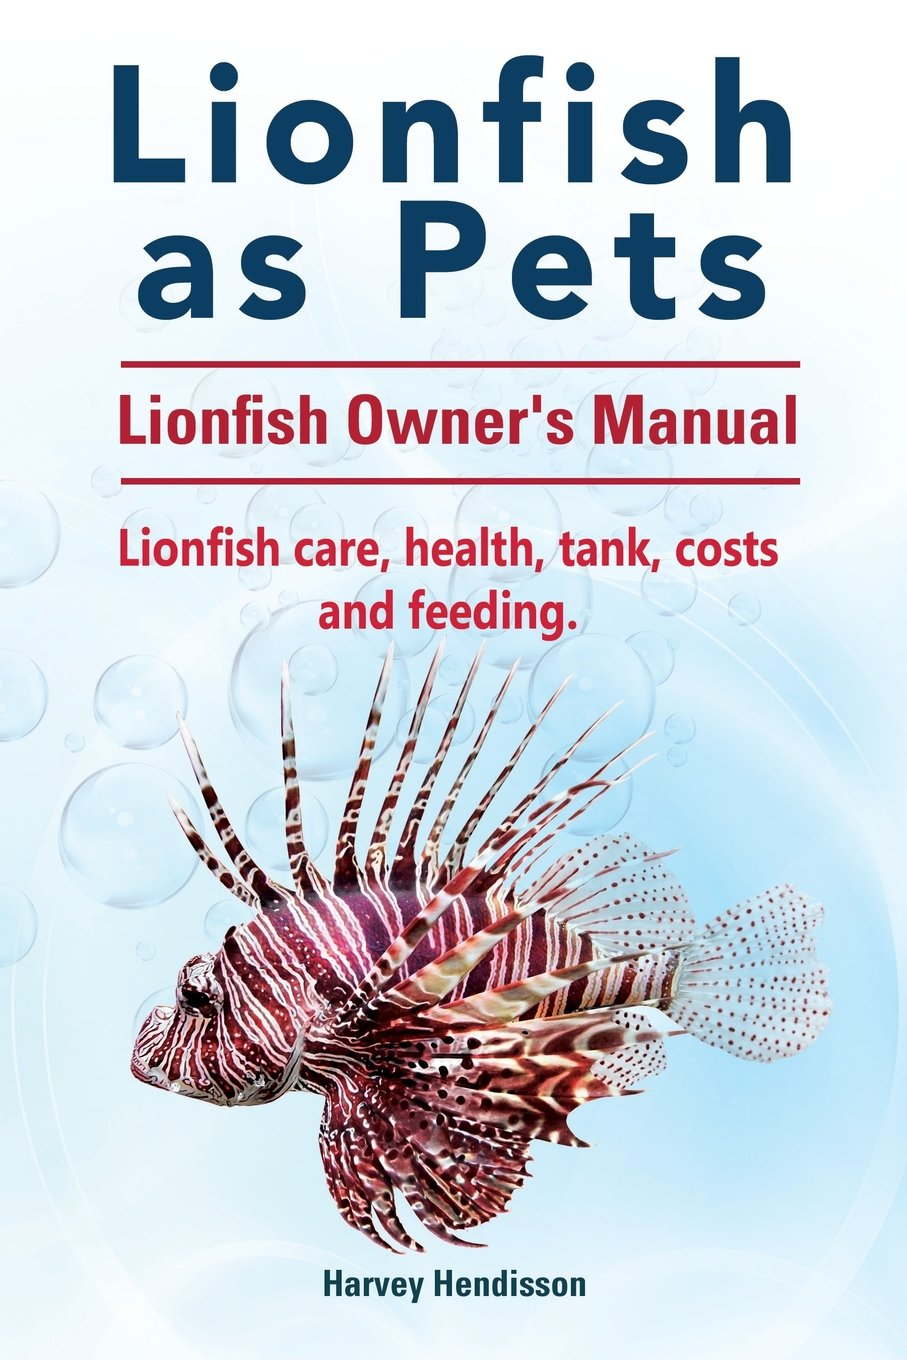 Lionfish as Pets. Lionfish Owners Manual. Lionfish care, health, tank, costs and feeding.